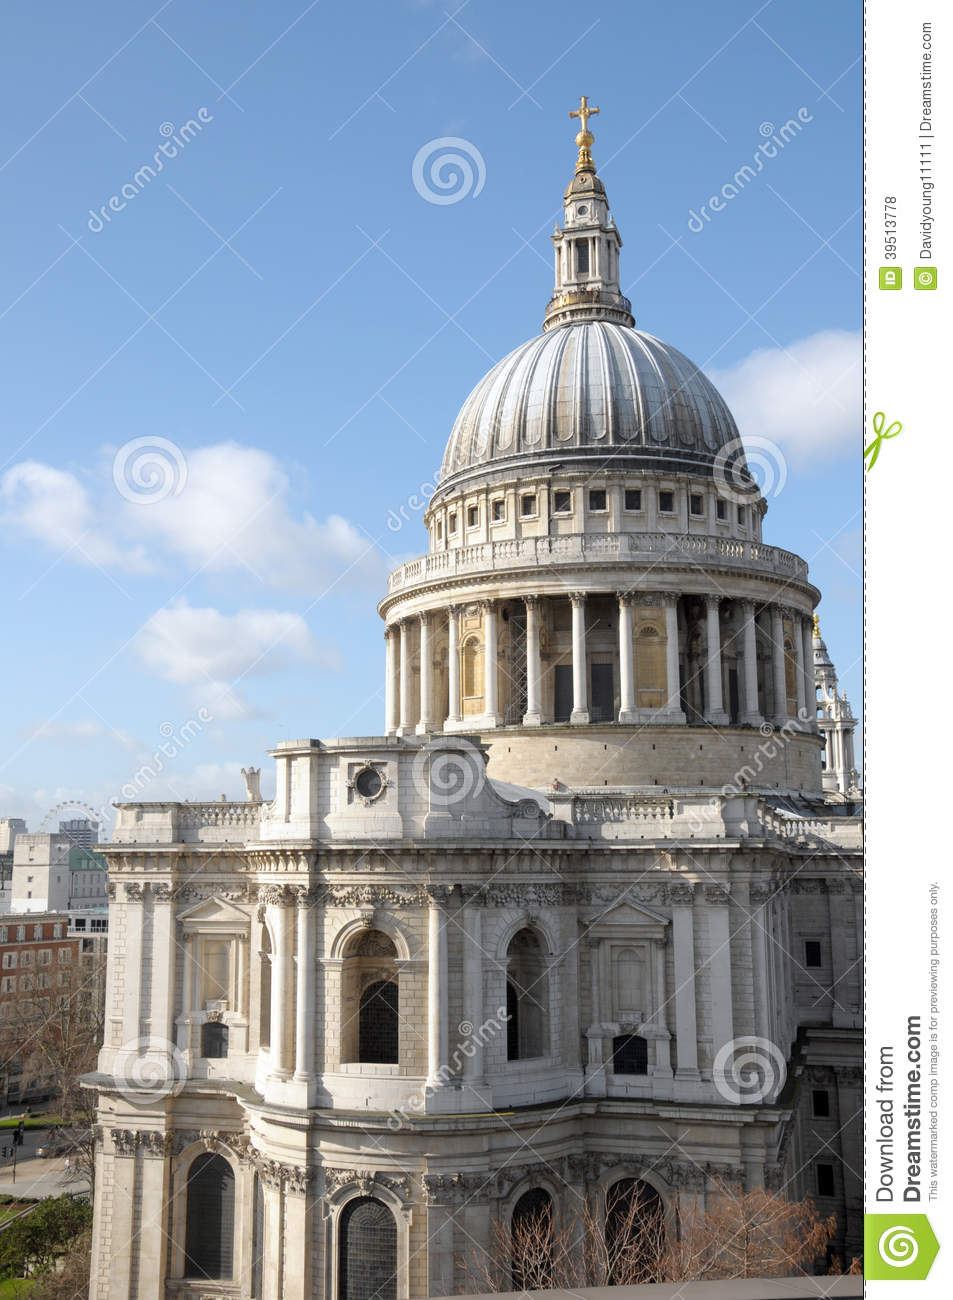 St Pauls Cathedral from rooftop viewing platform